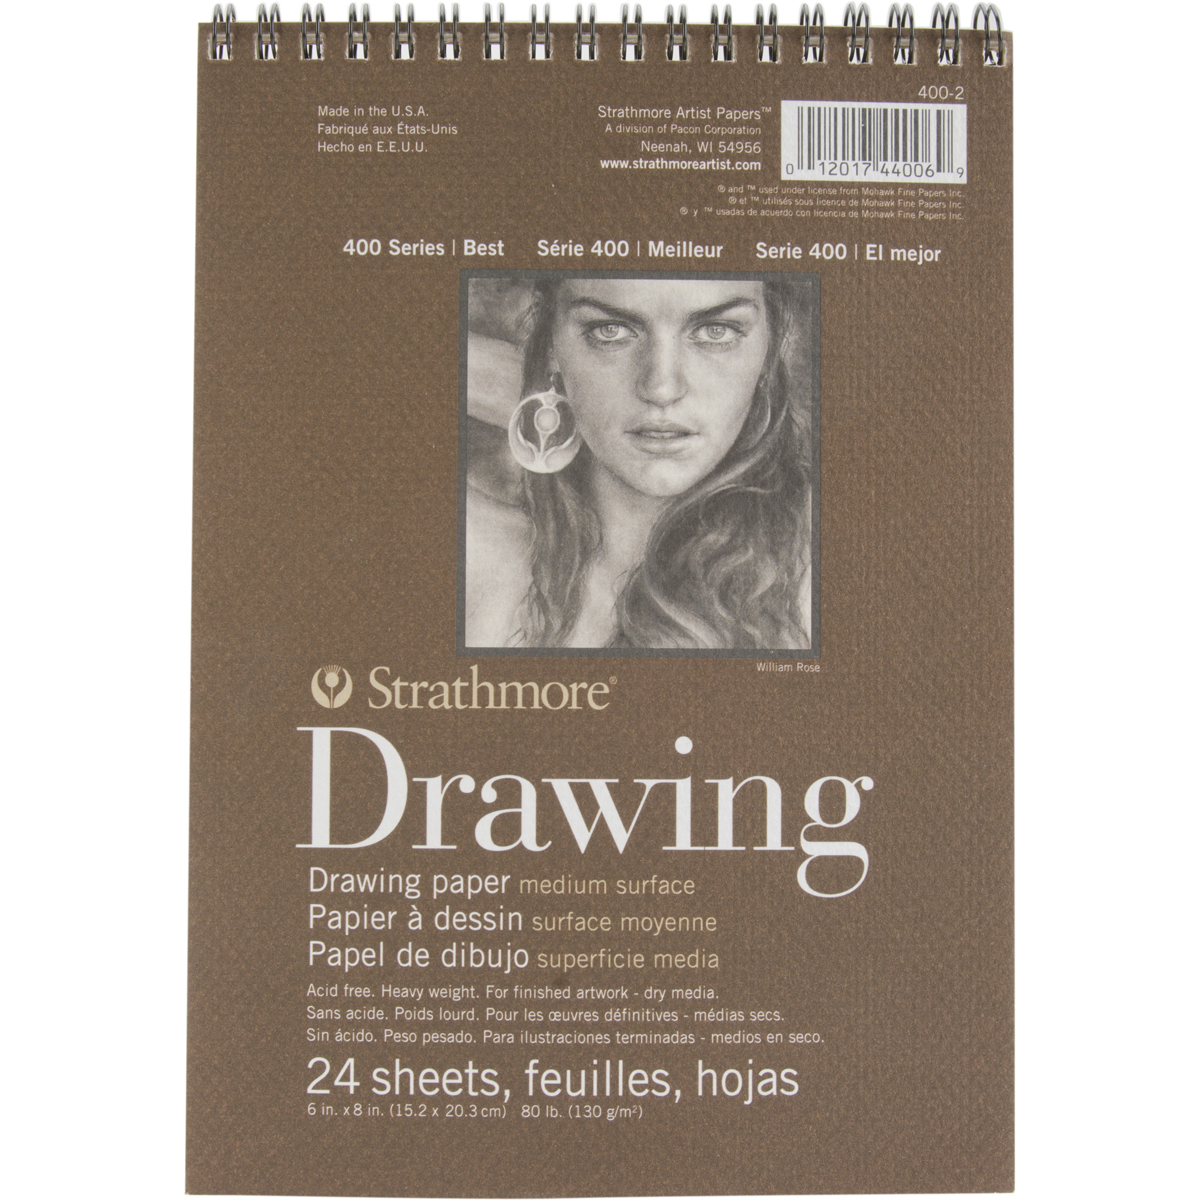 "Strathmore Drawing Medium Paper Pad, 6"" x 8"", 24 Sheets"